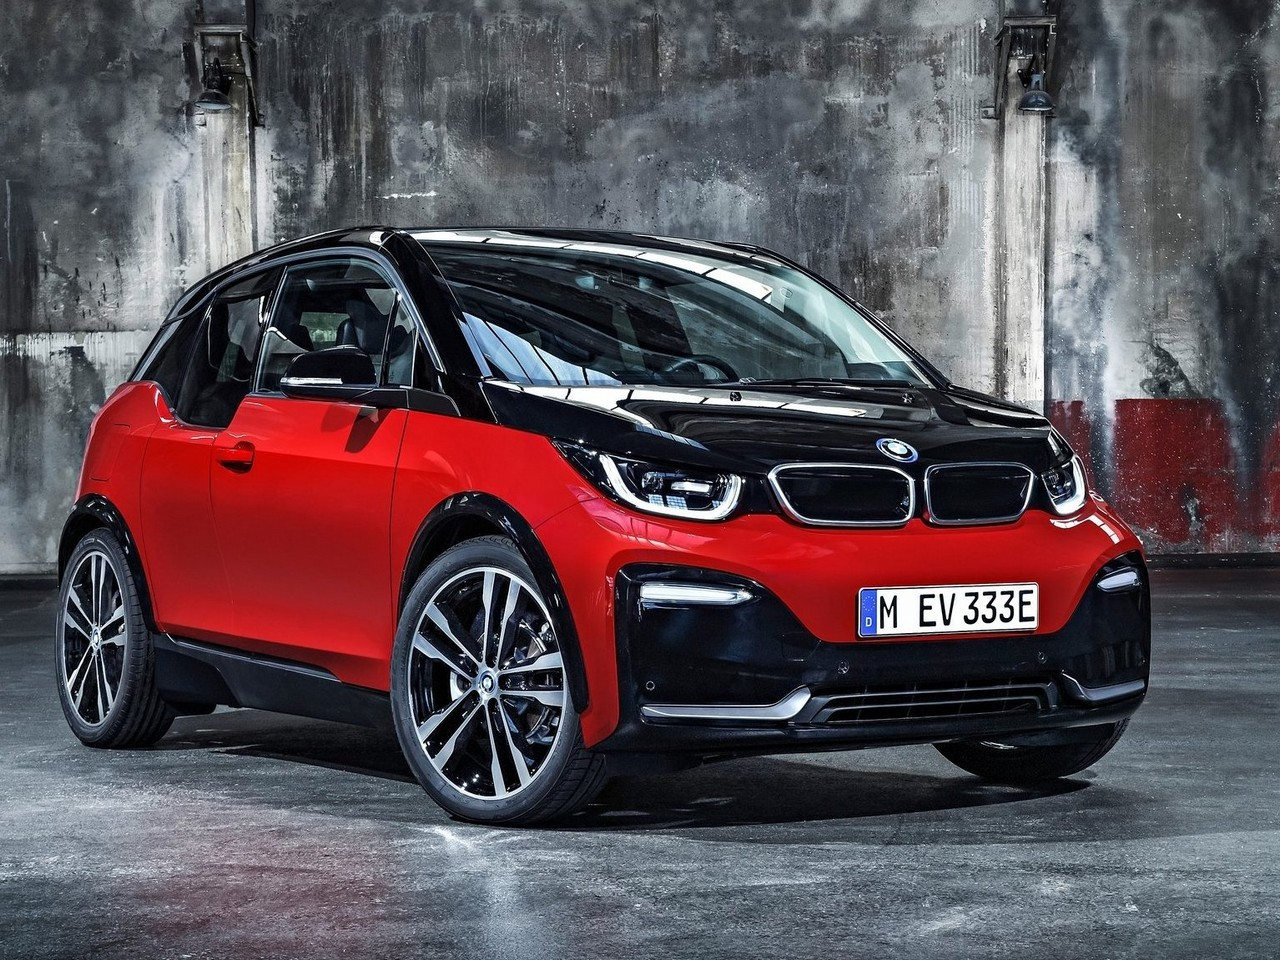 bmw i3 et i3s 2018 moteur plus puissant et plus rapide a recharger. Black Bedroom Furniture Sets. Home Design Ideas